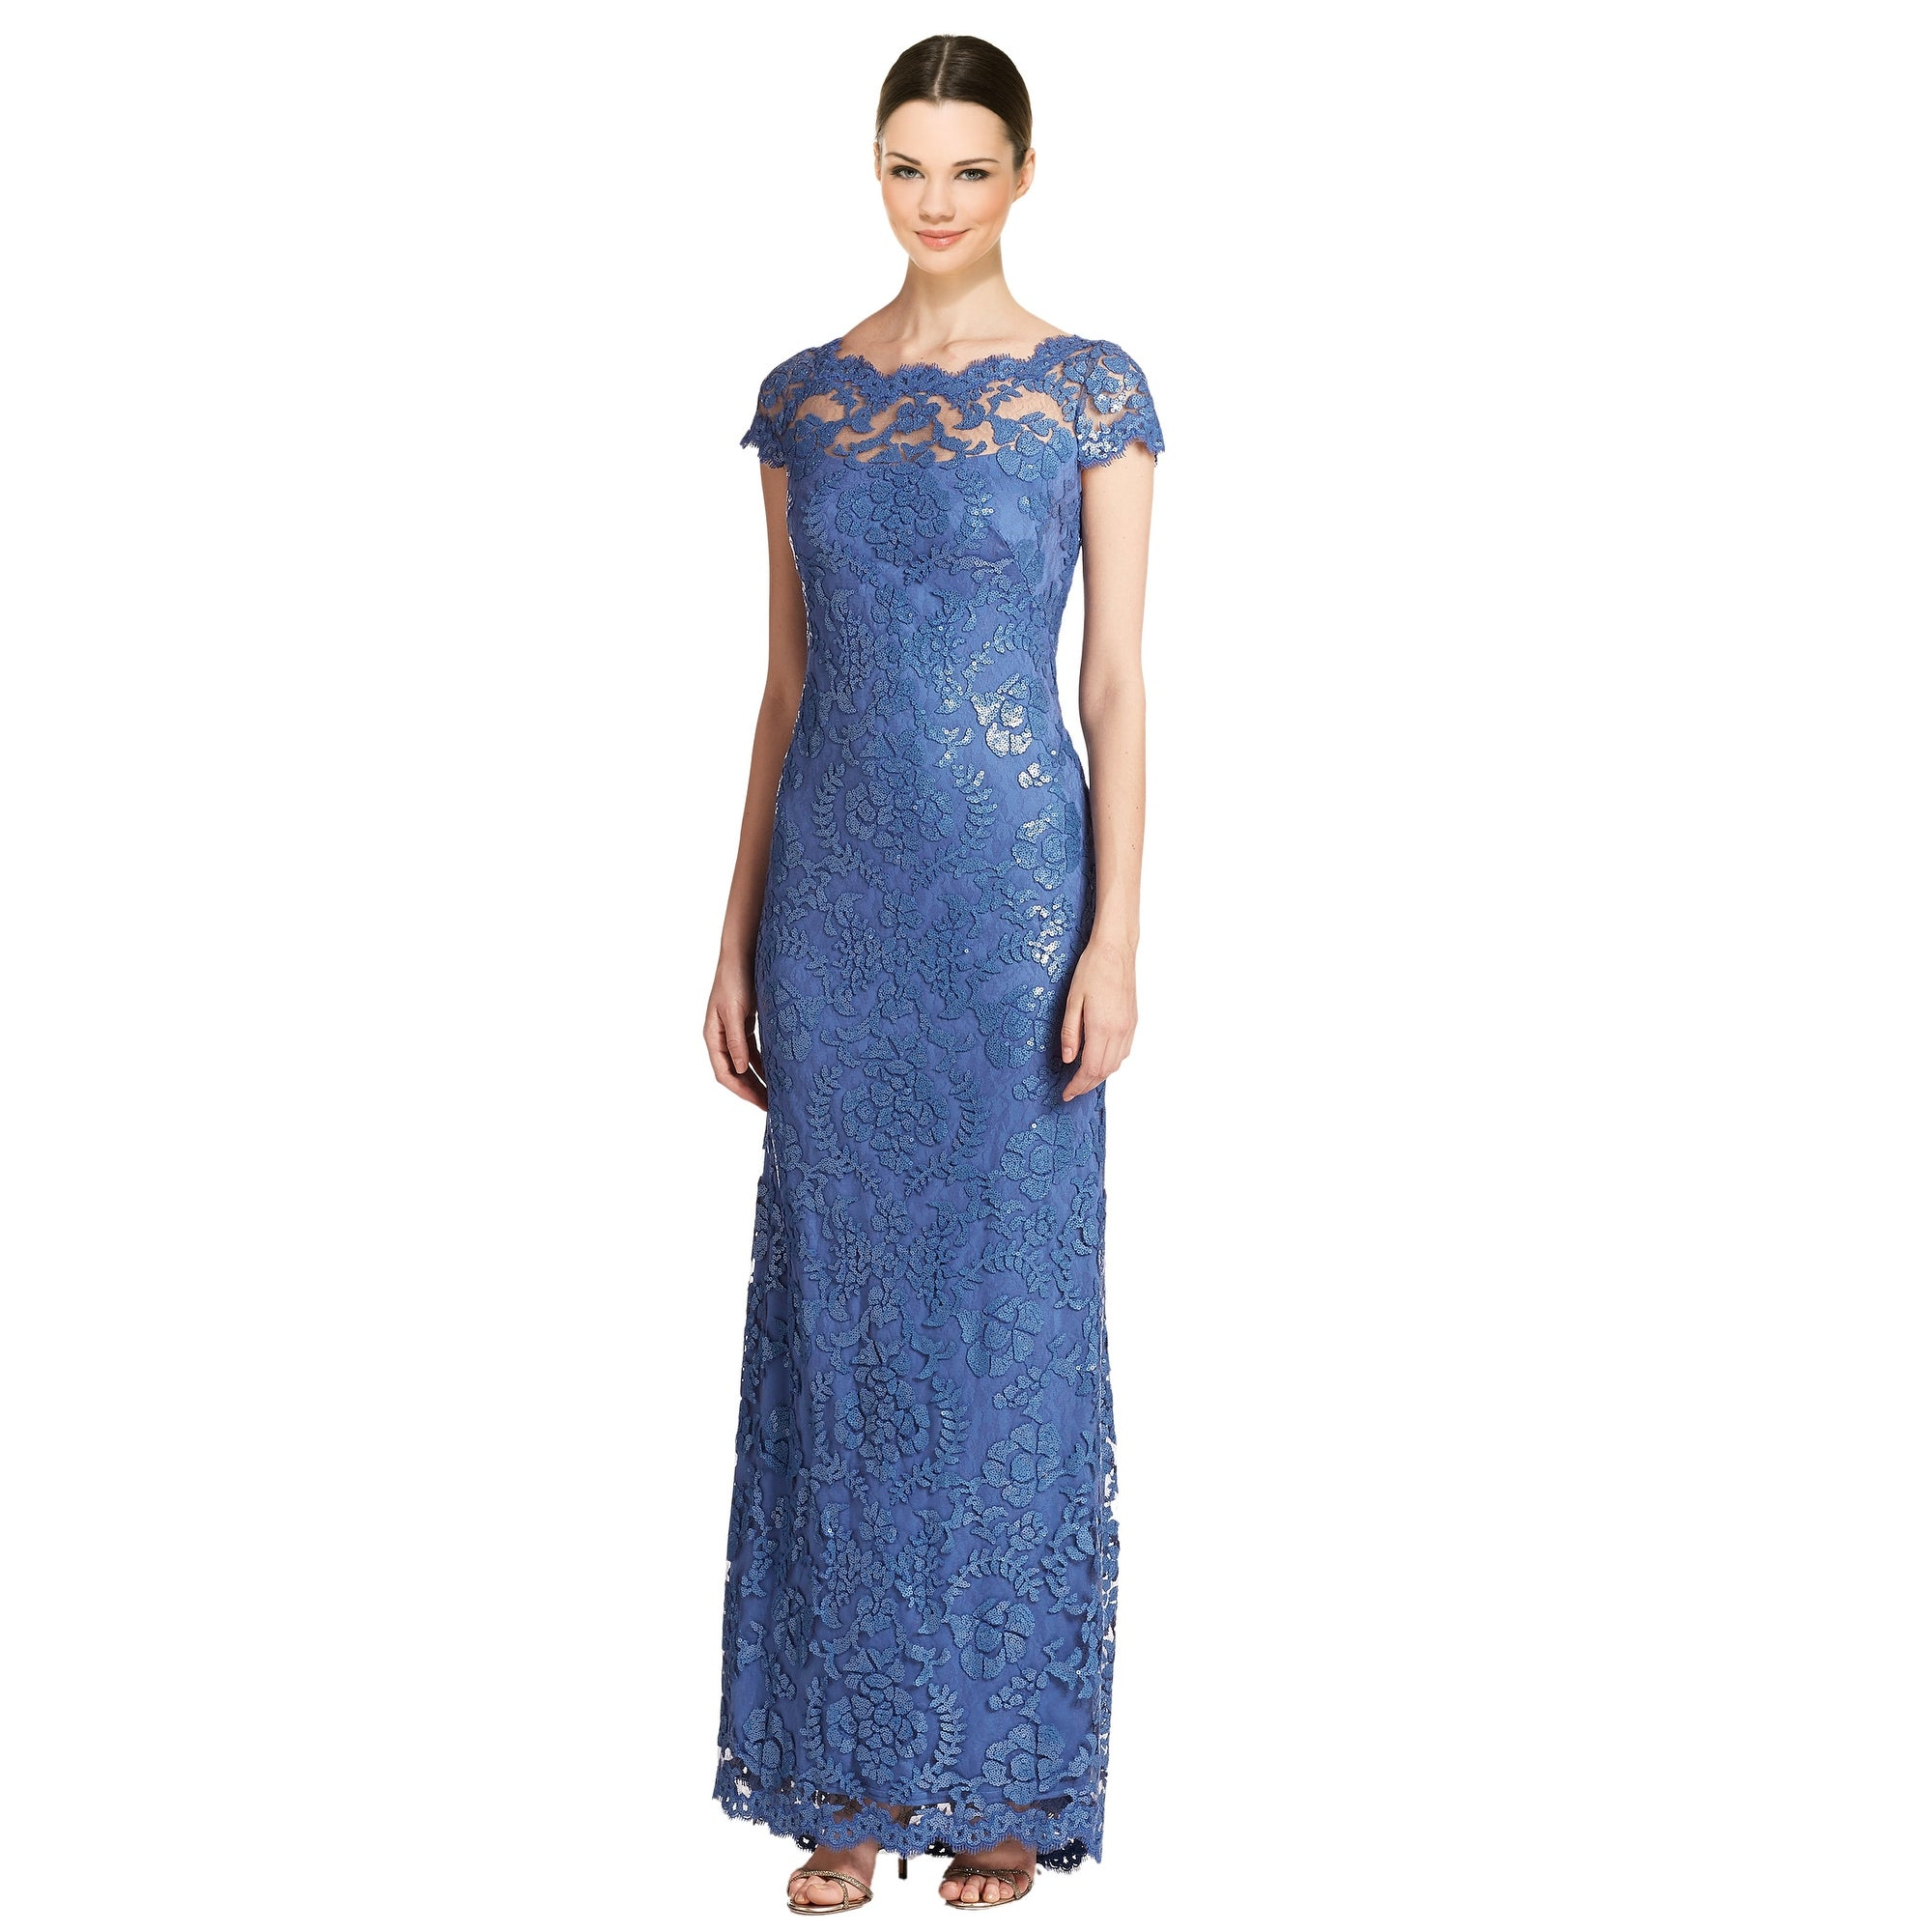 Tadashi Shoji Fl Embroidered Sequin Cap Sleeve Evening Gown Dress 12 Free Shipping Today 24466094